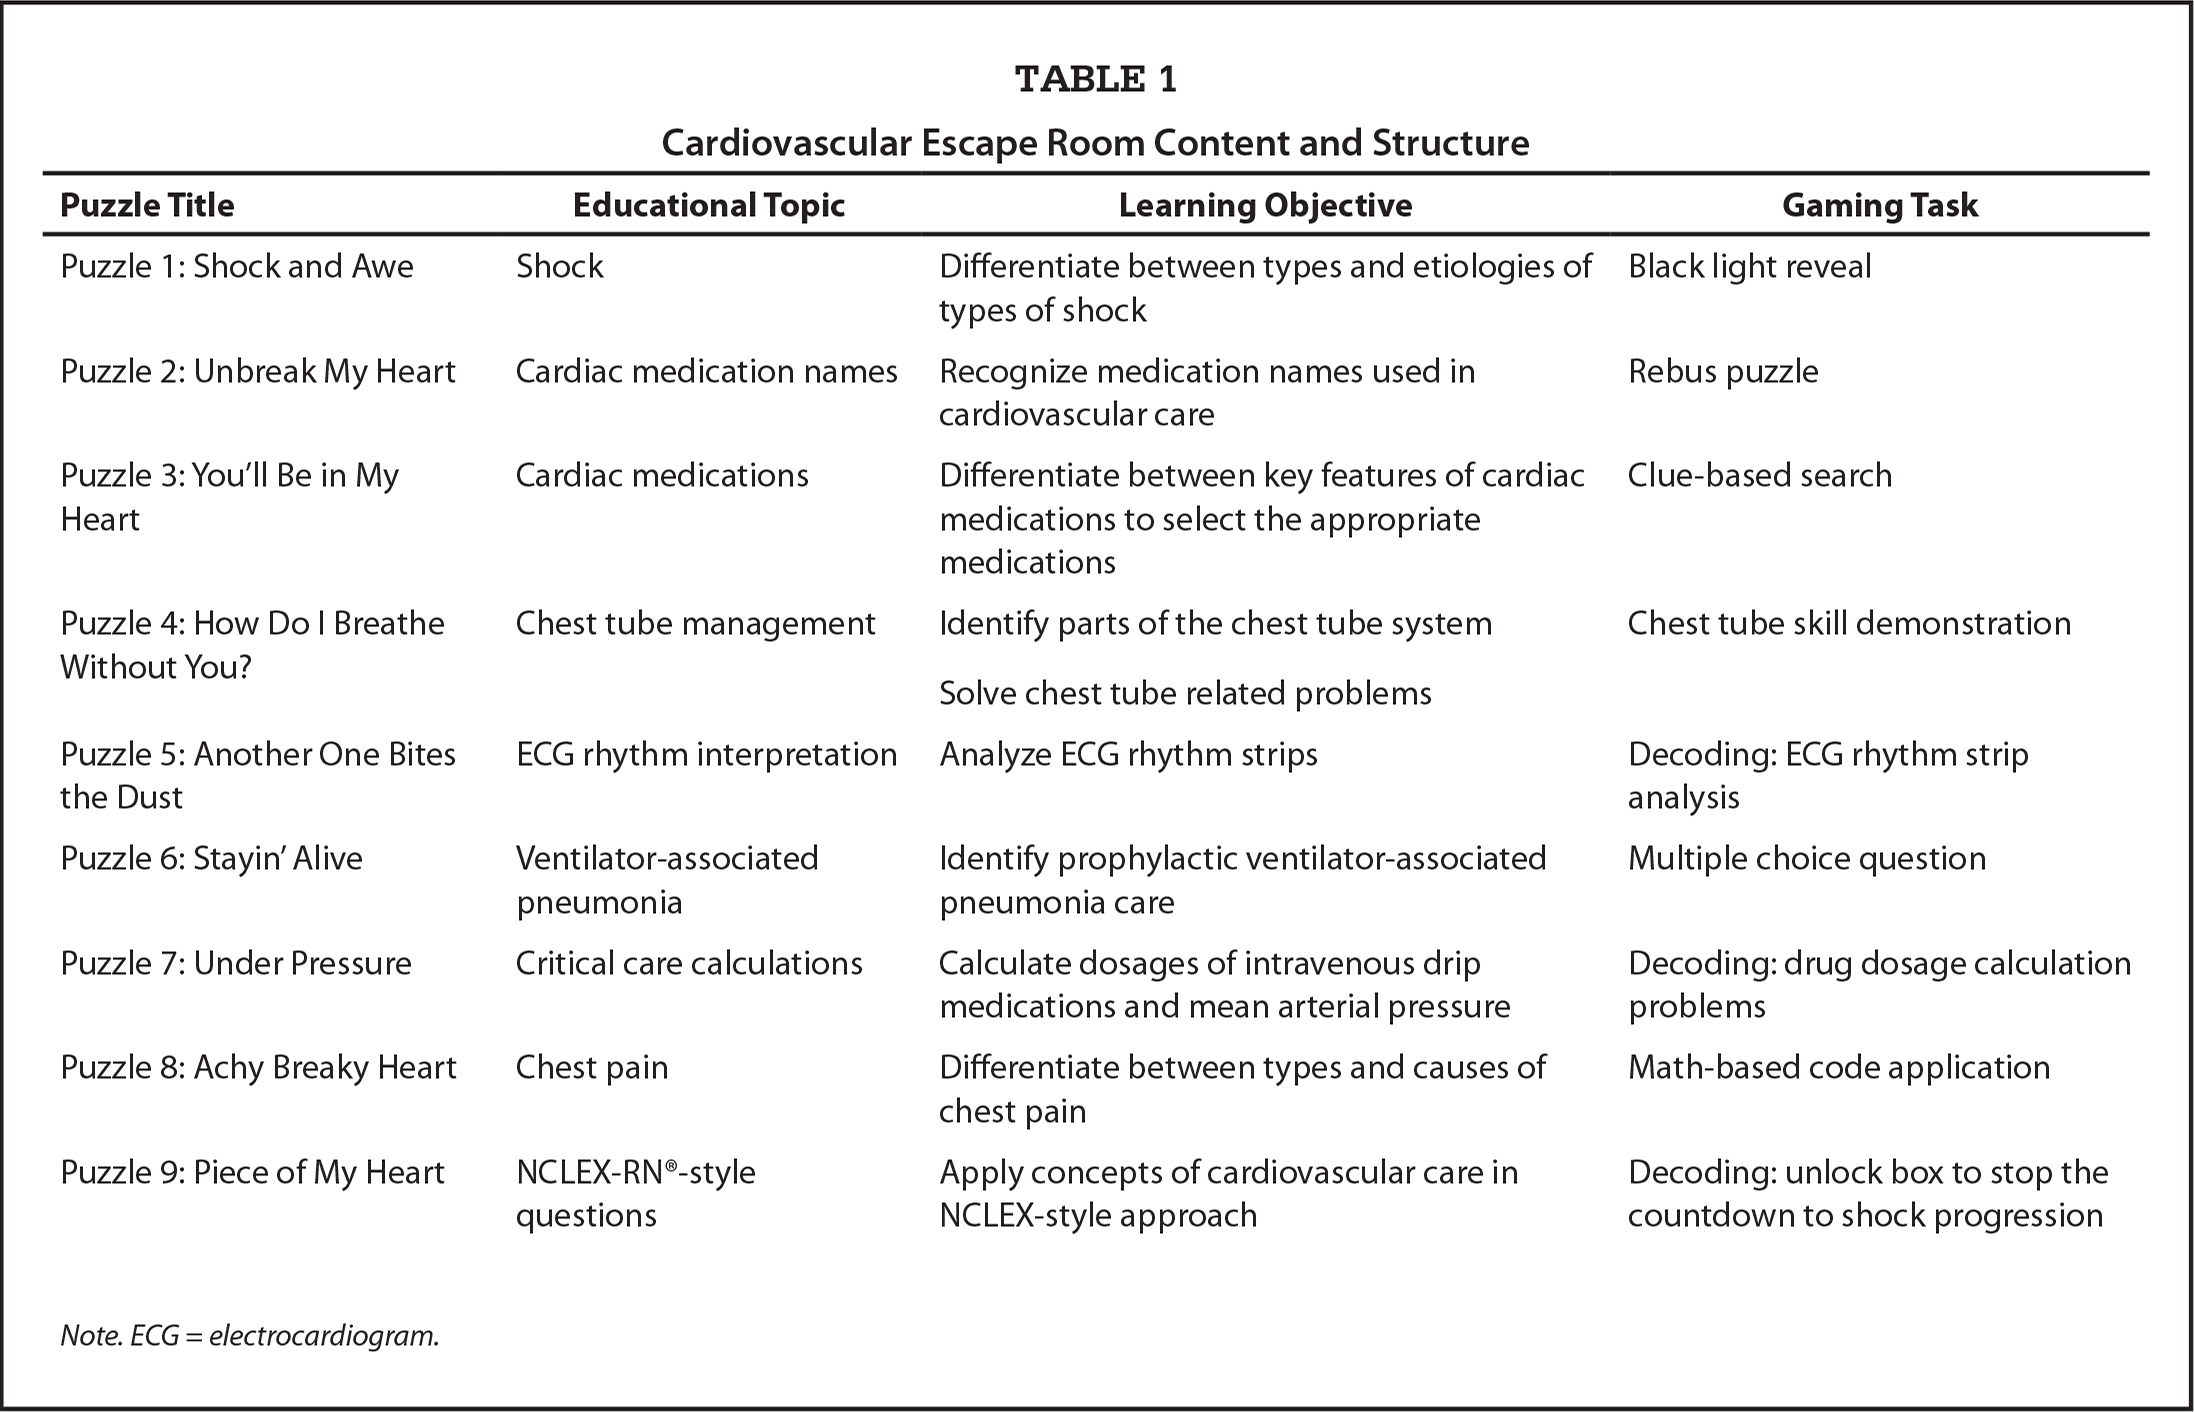 Cardiovascular Escape Room Content and Structure